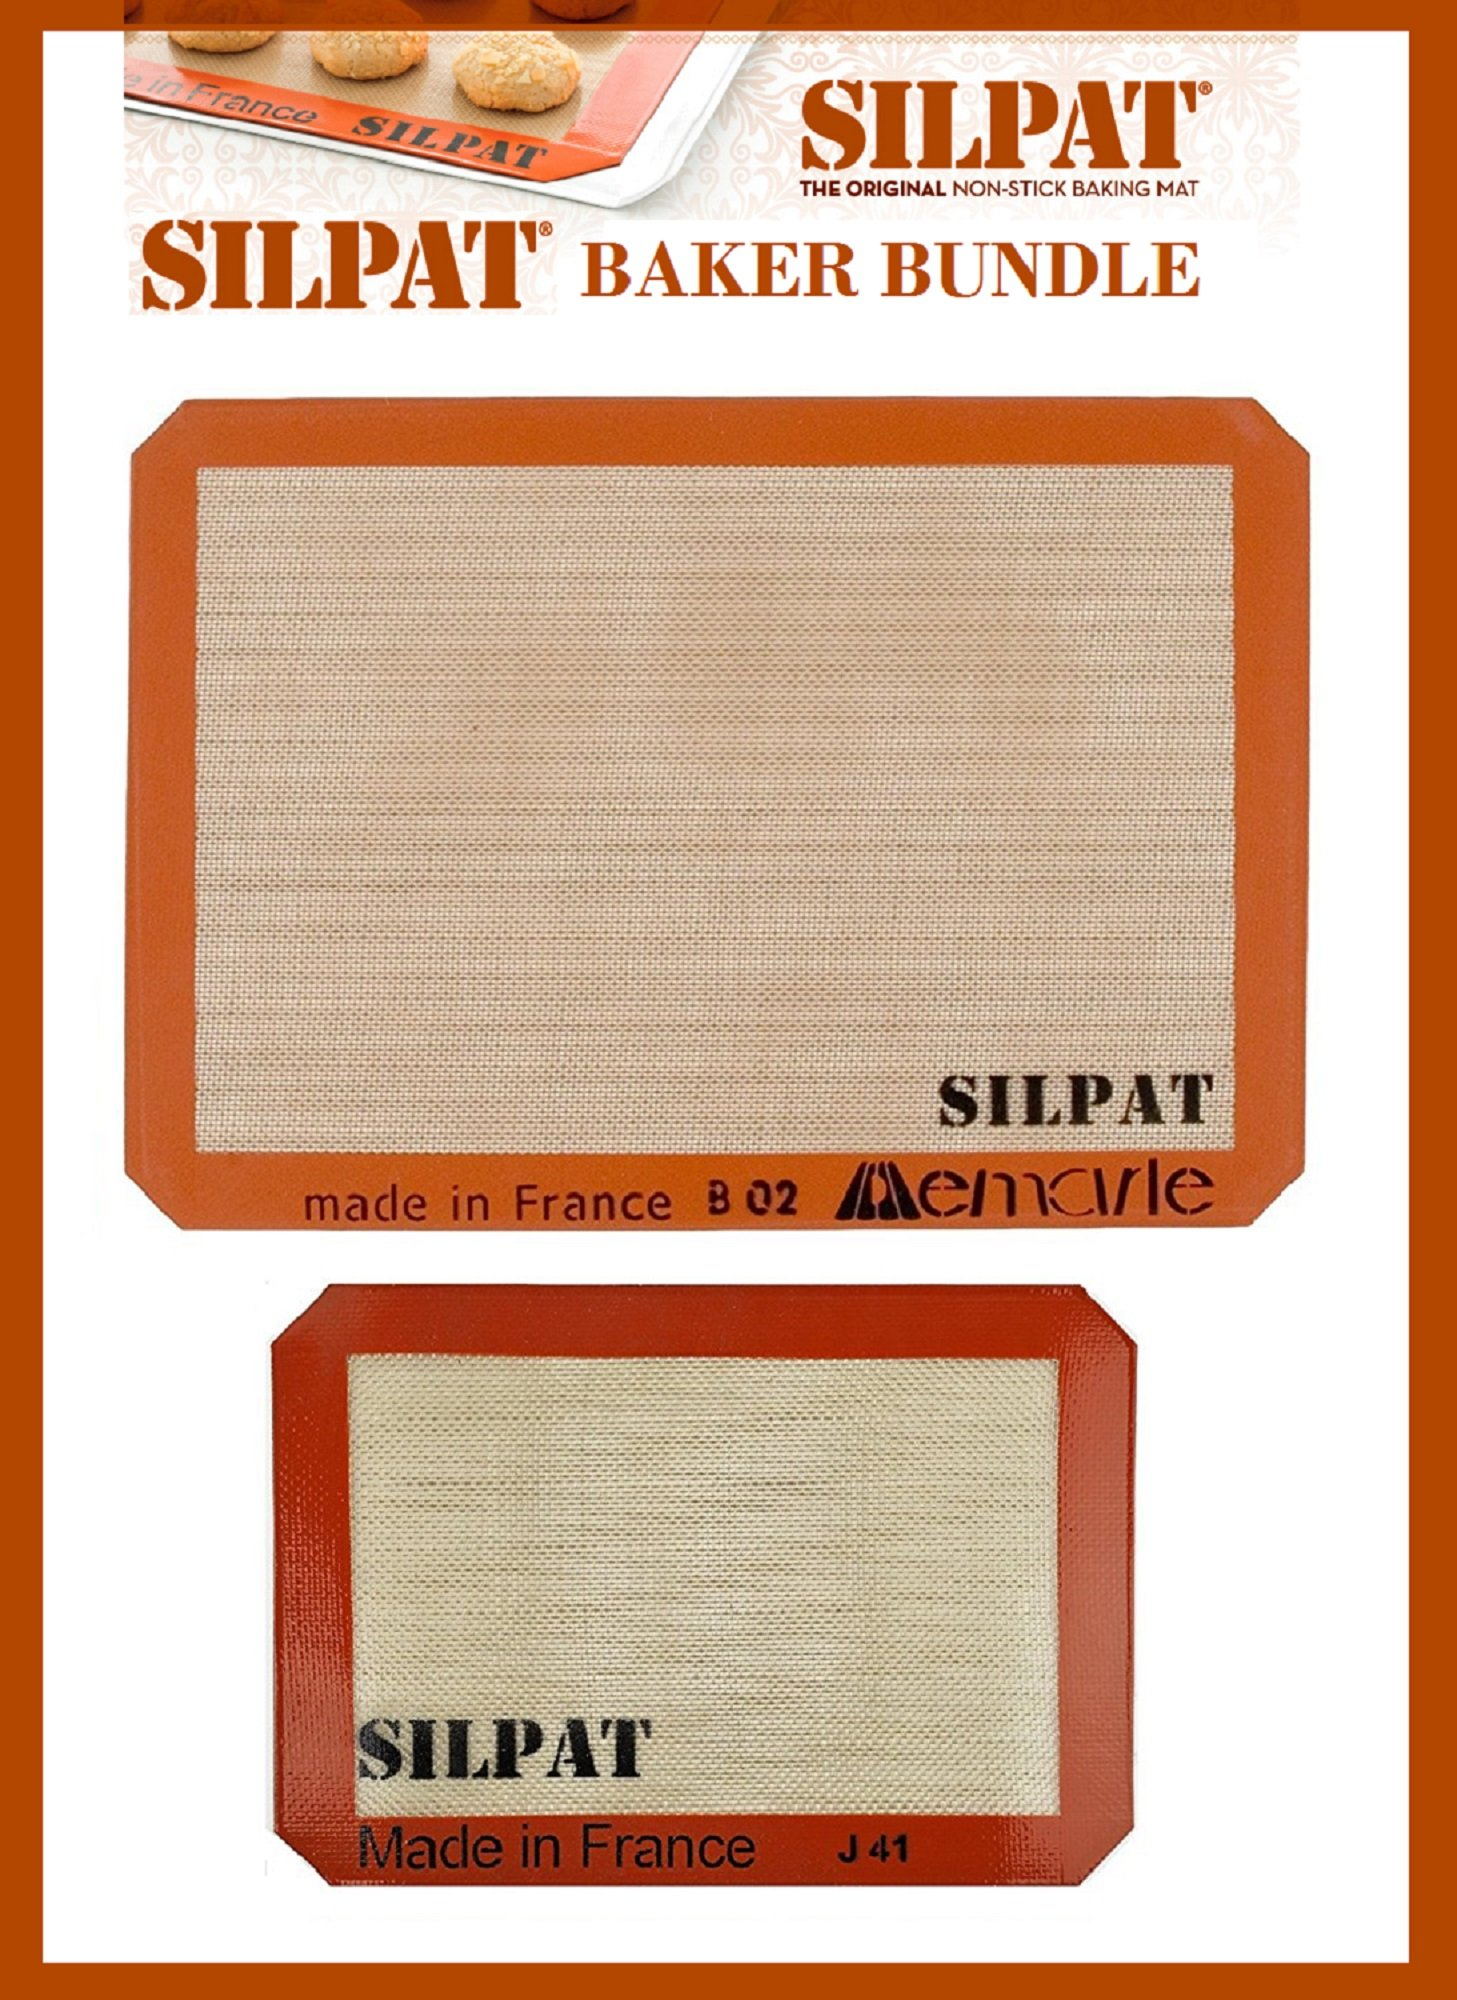 Silpat Bakers Bundle (US Half Size 11-5/8'' x 16-1/2'' Silicone Baking Mat & 8-1/4'' x 11-3/4'' Jelly Roll)